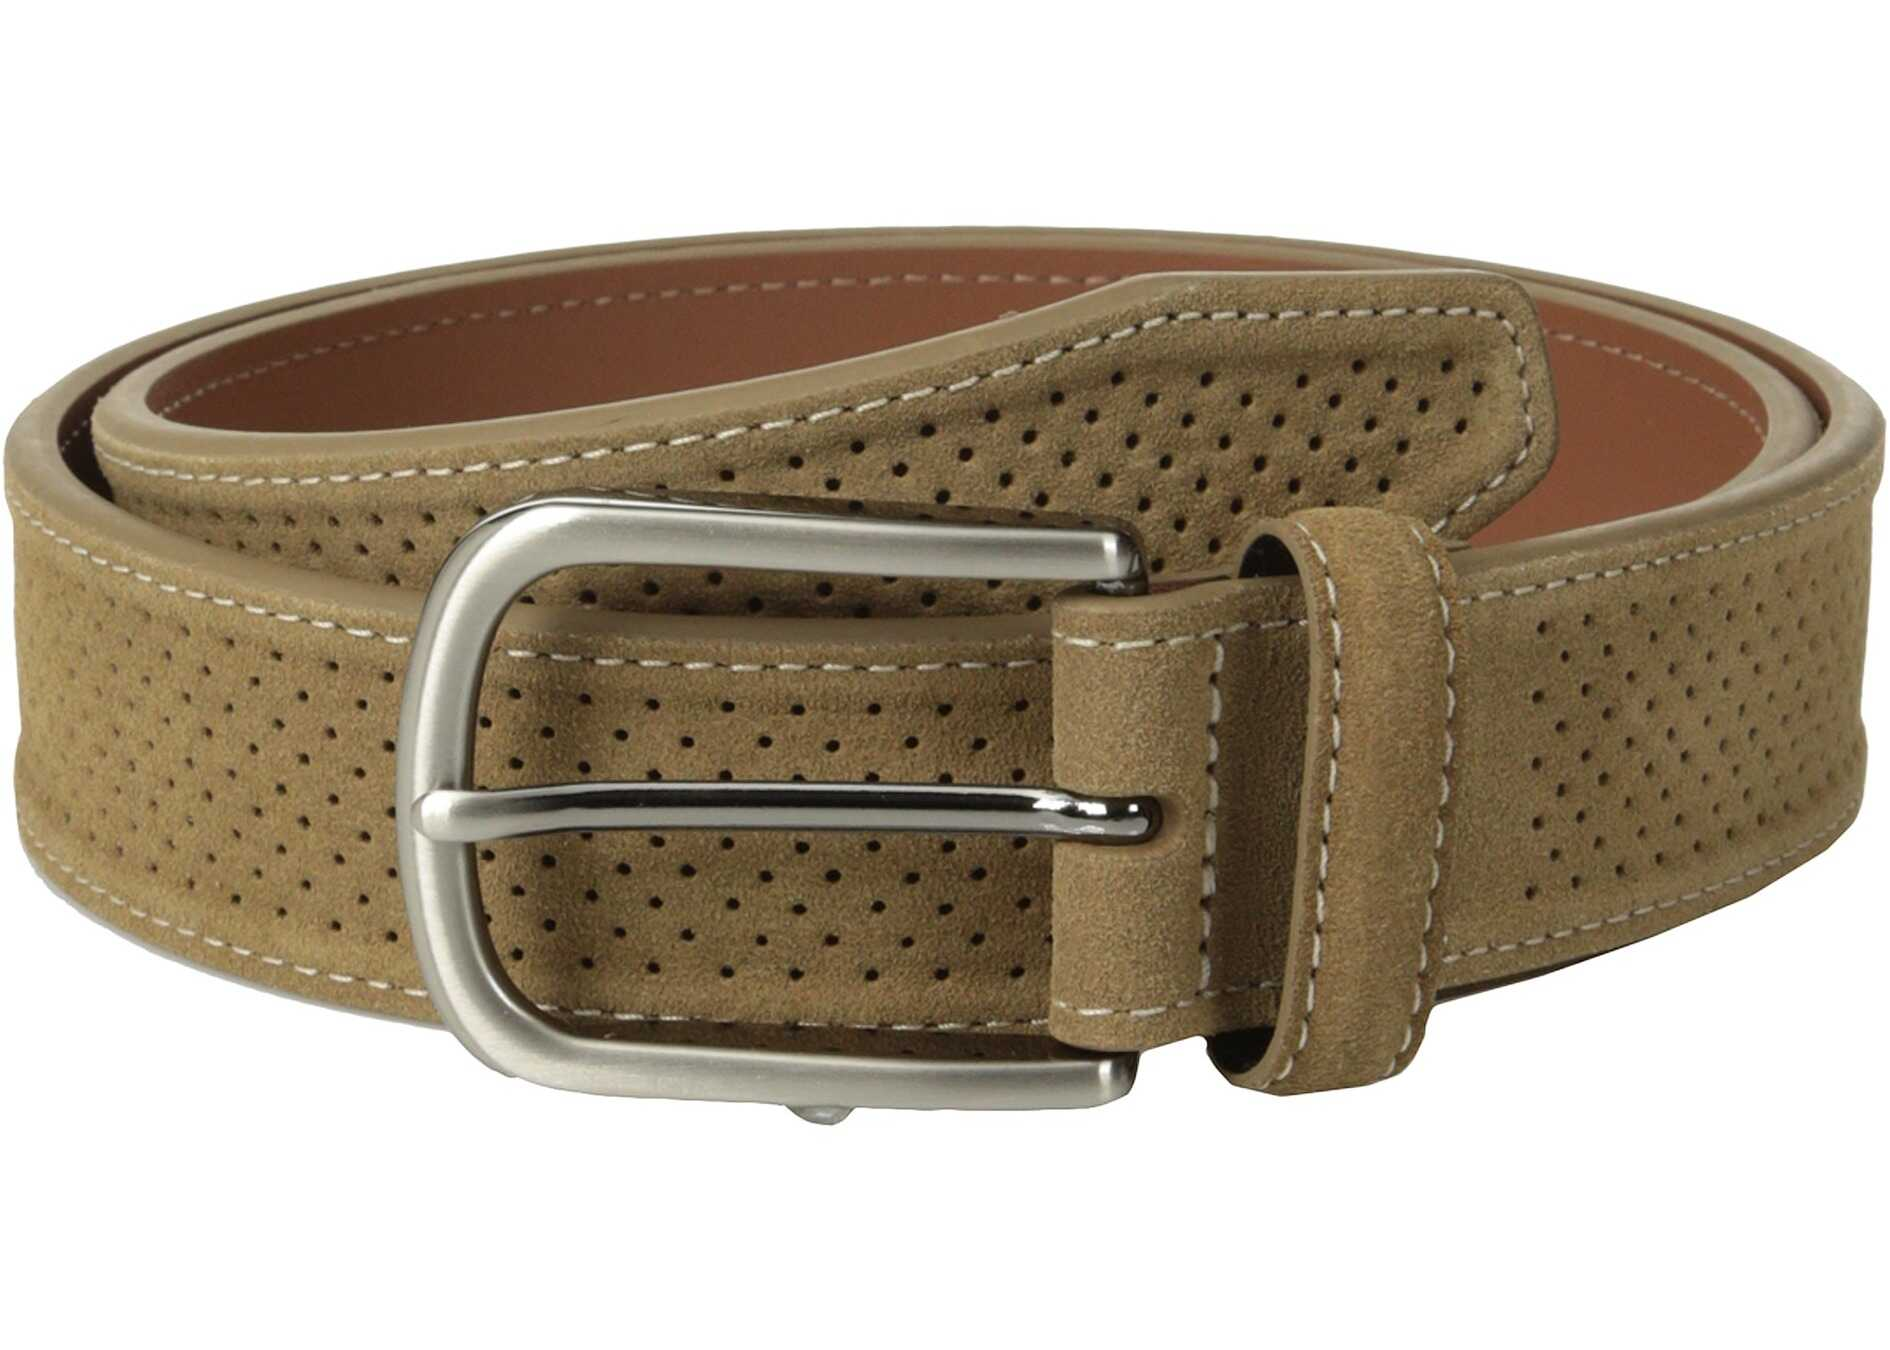 Johnston & Murphy Perforated Suede Tan